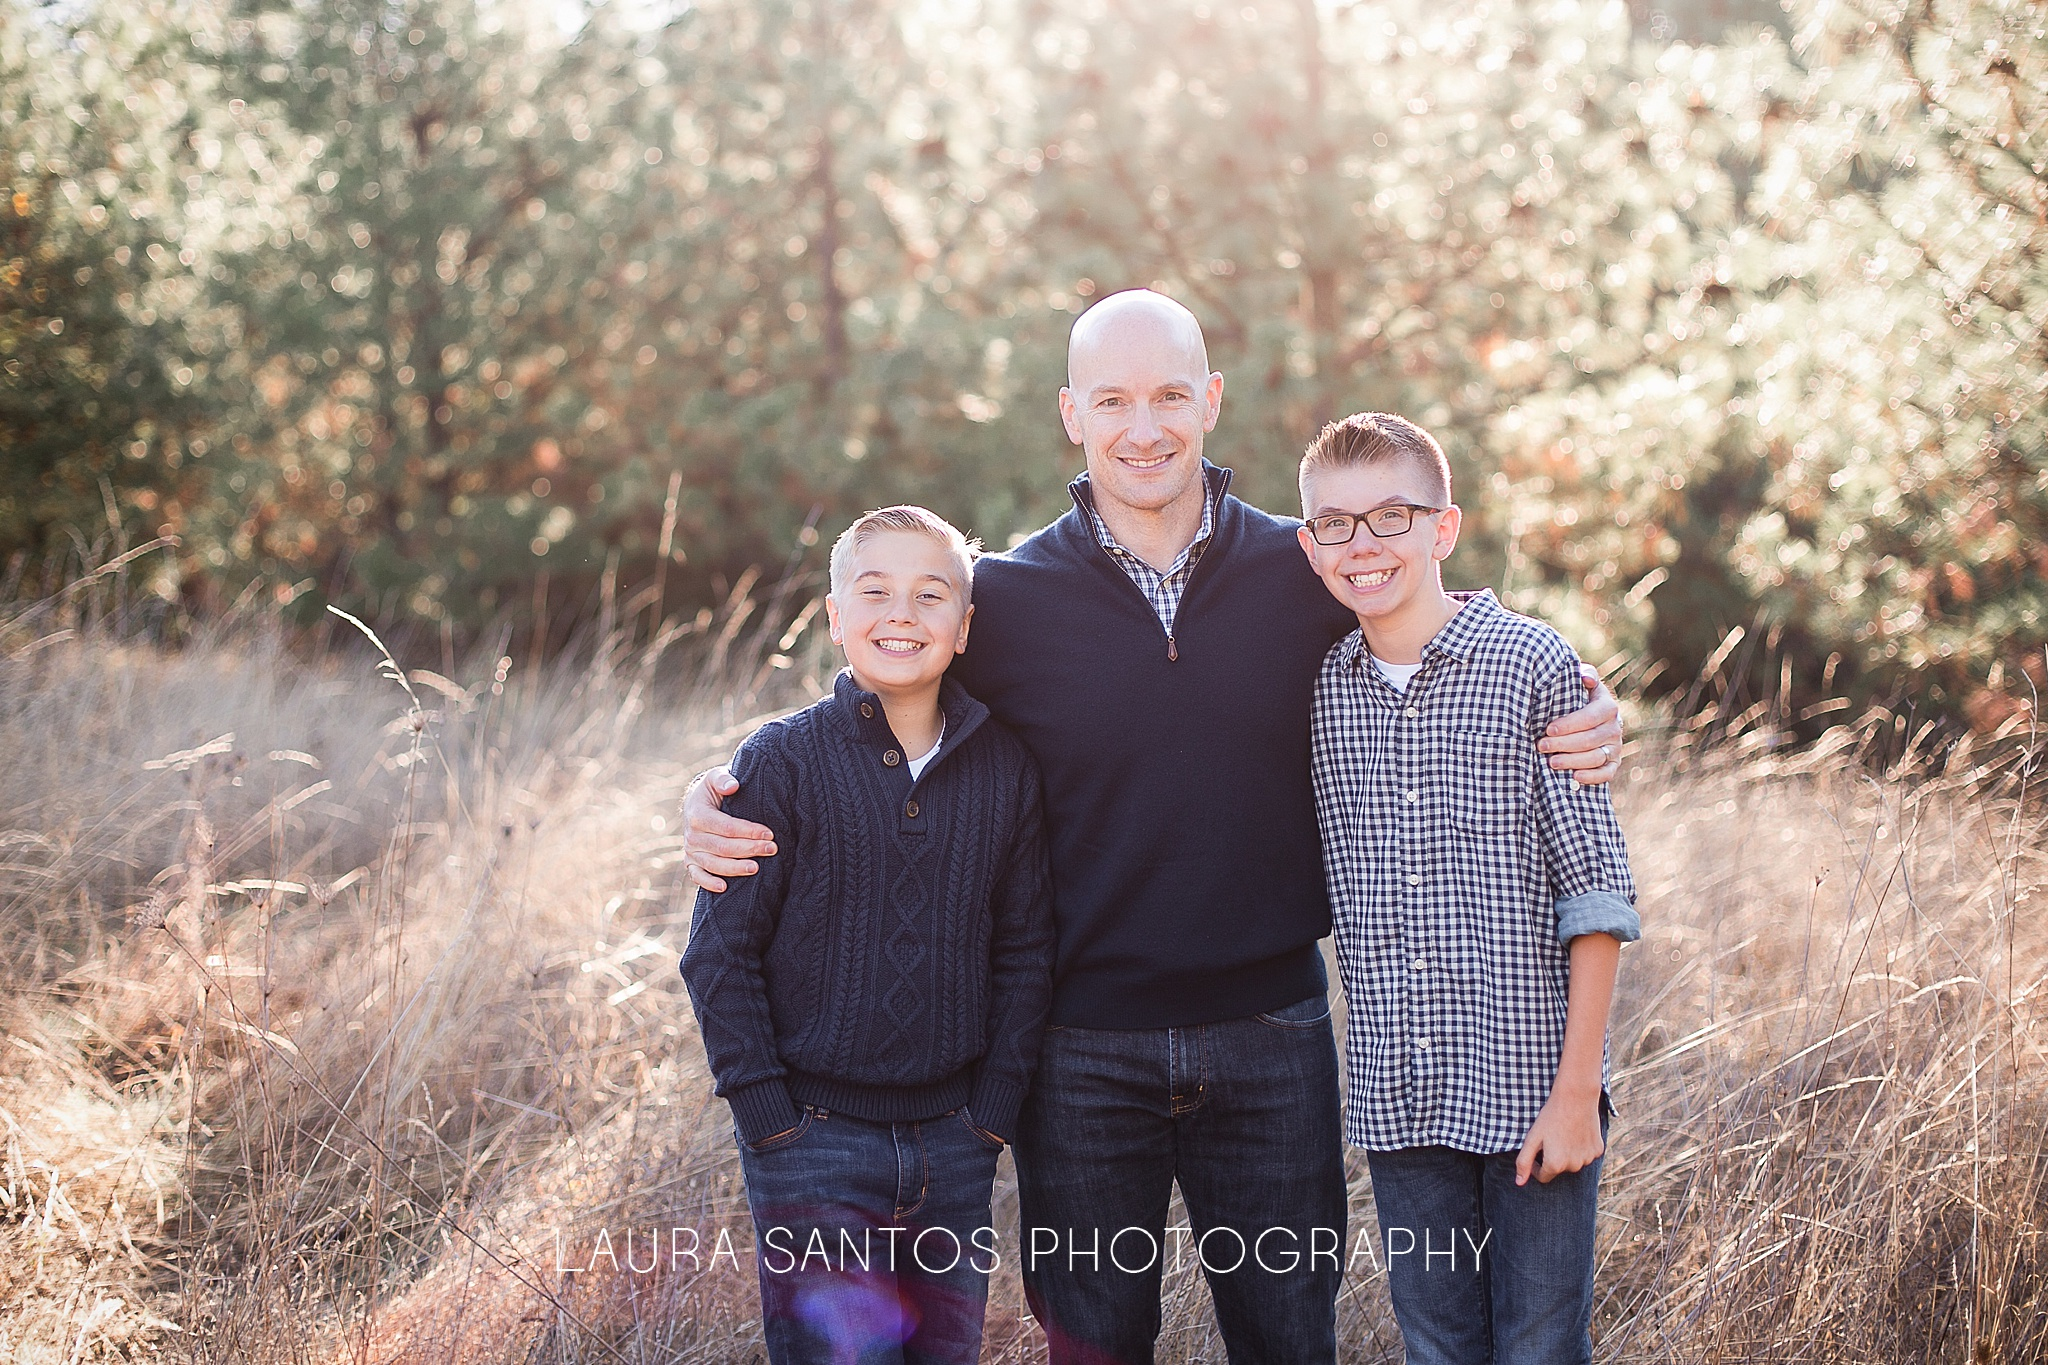 Laura Santos Photography Portland Oregon Family Photographer_0623.jpg